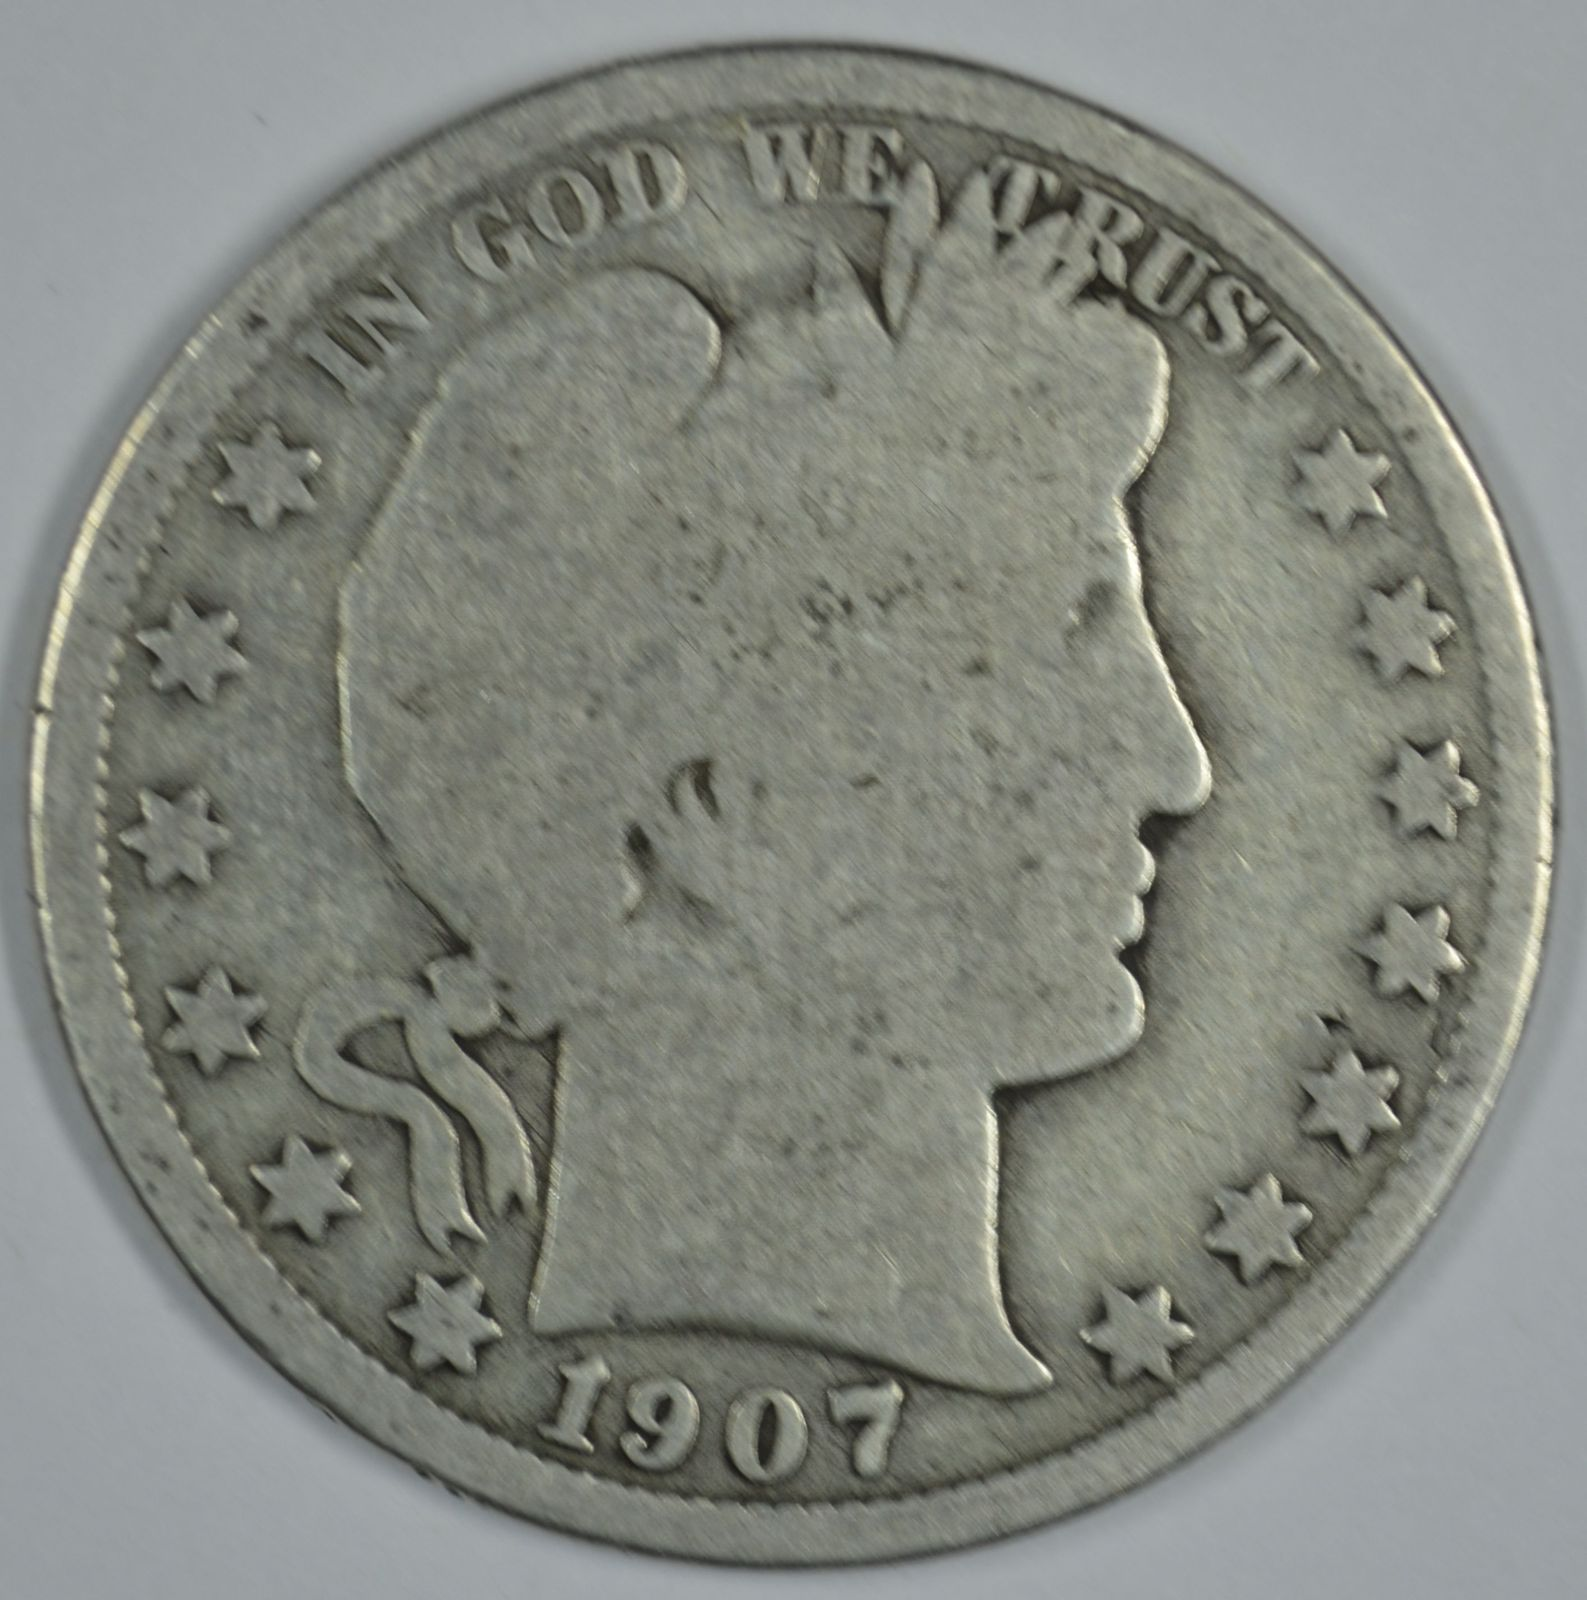 Primary image for 1907 O Barber circulated silver half